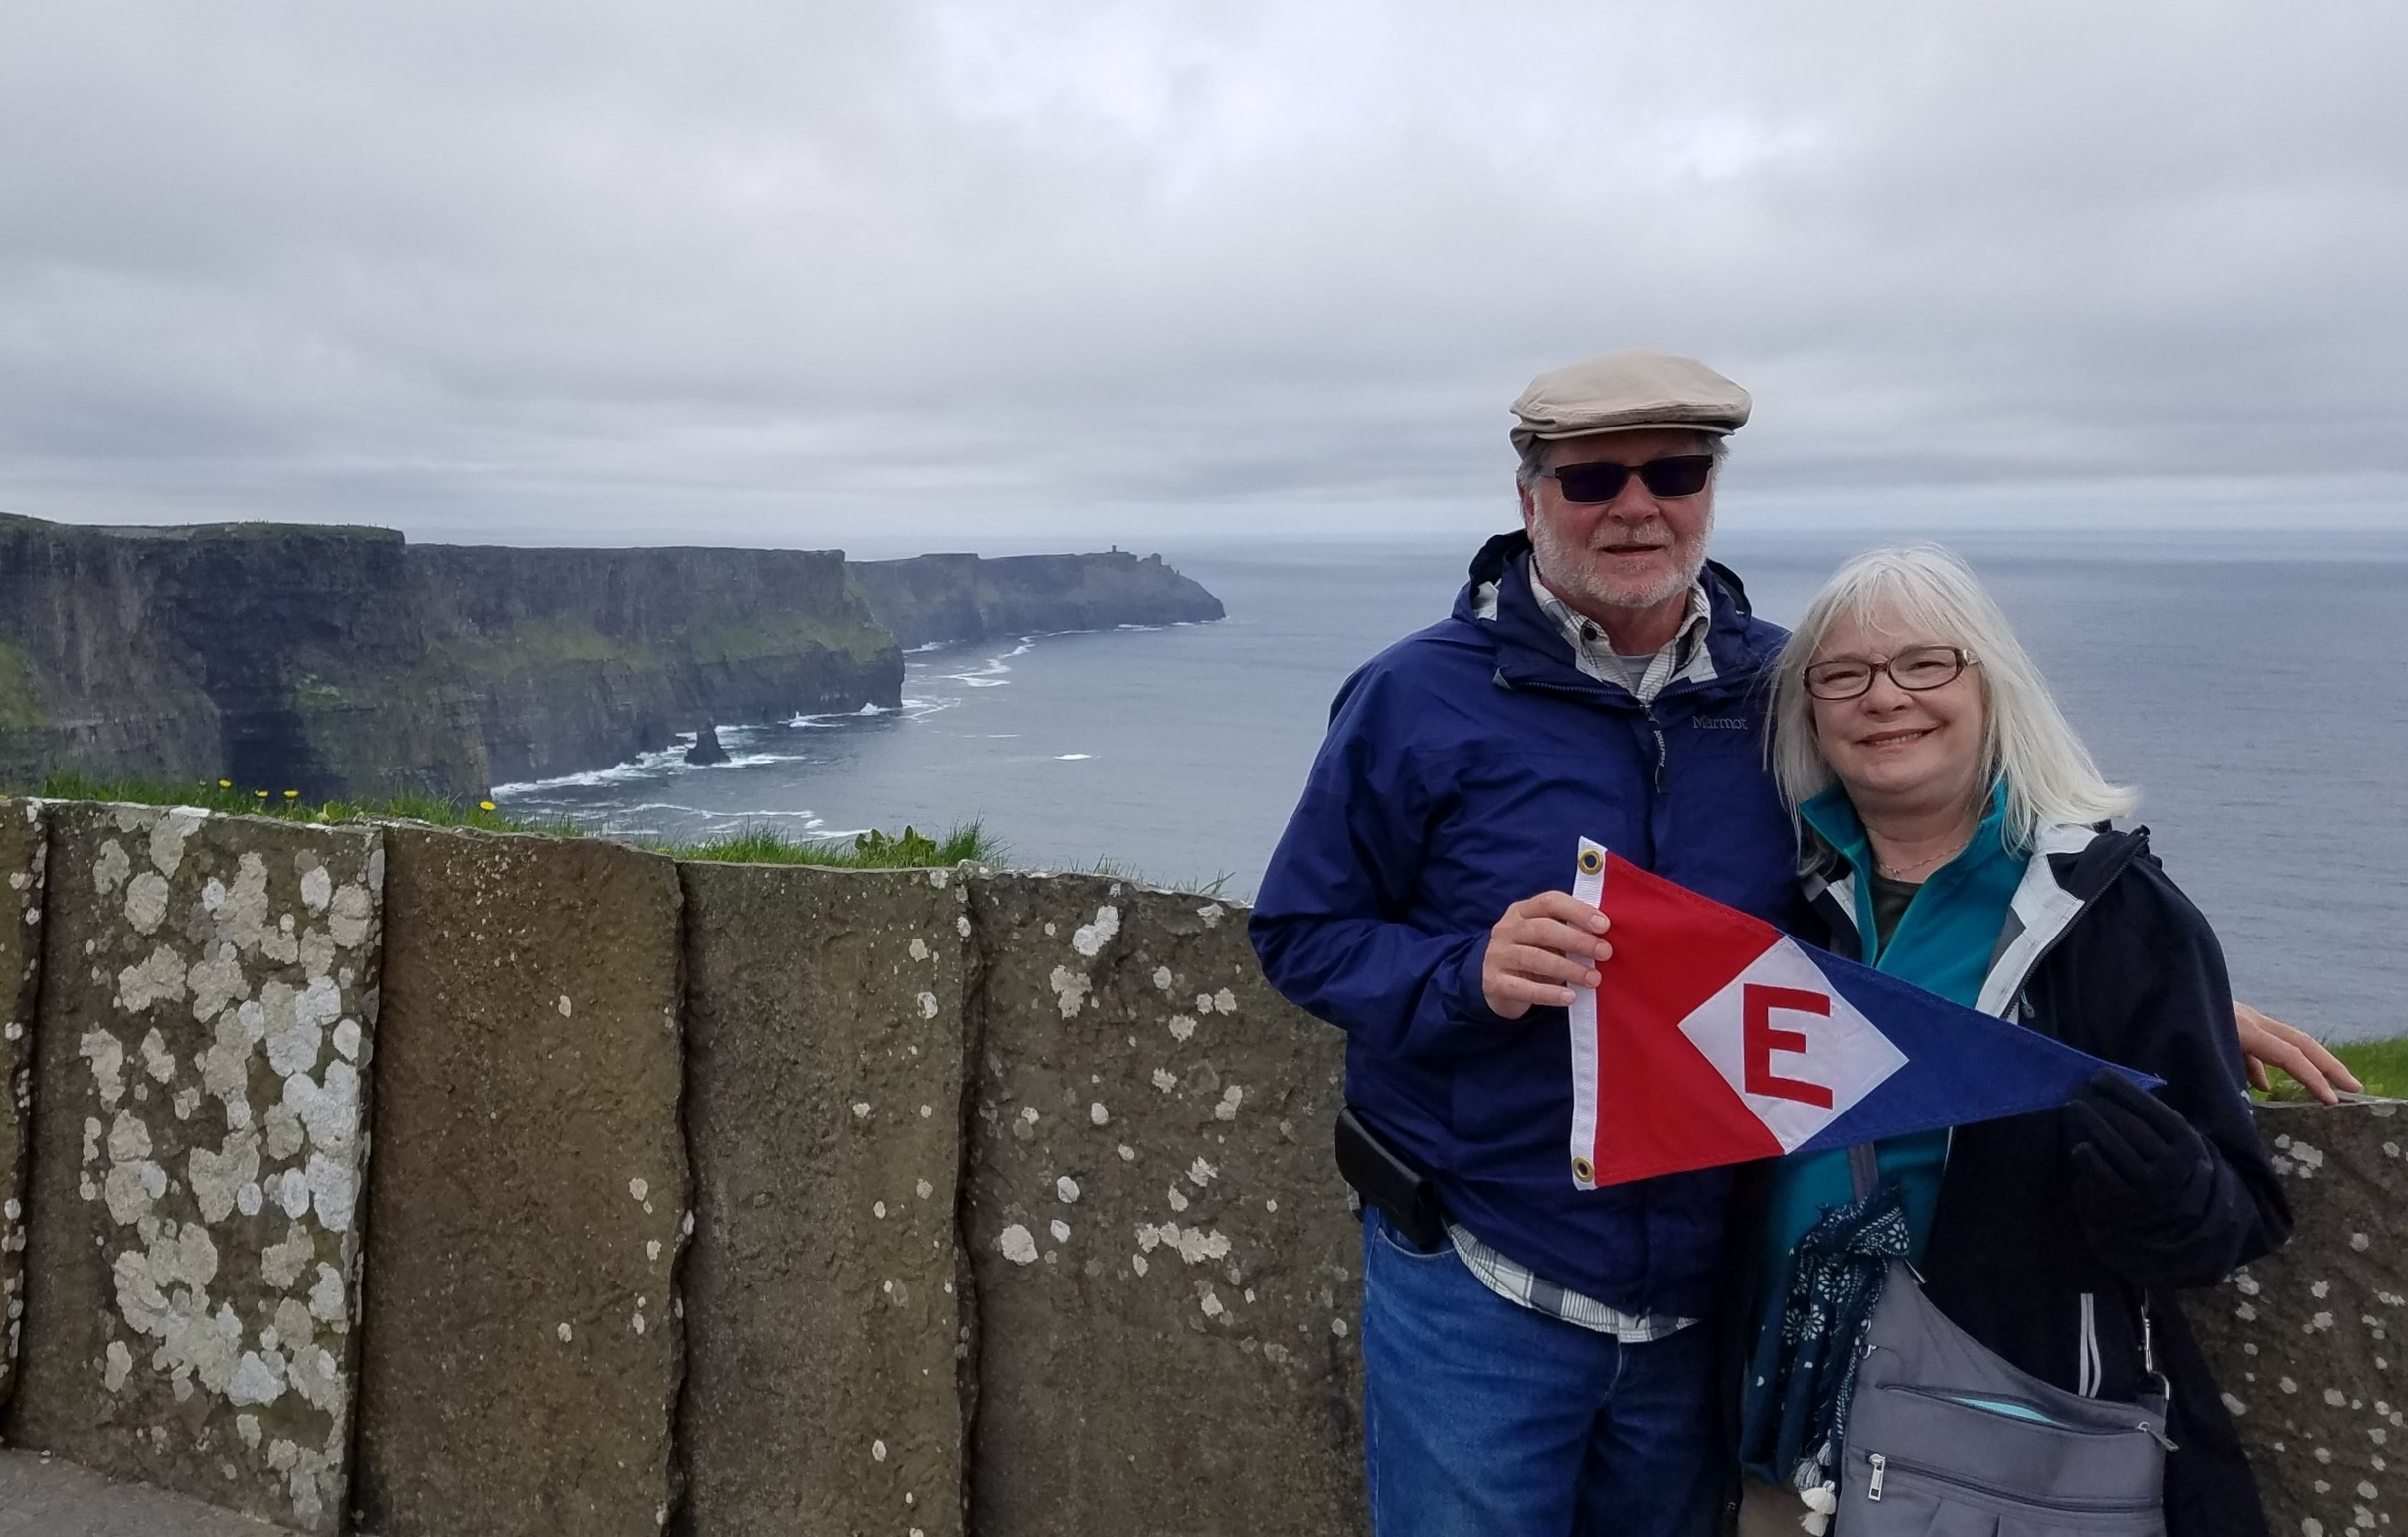 Murray and Linda McLeod fly the EYC burgee from the Cliffs of Moher in Ireland.